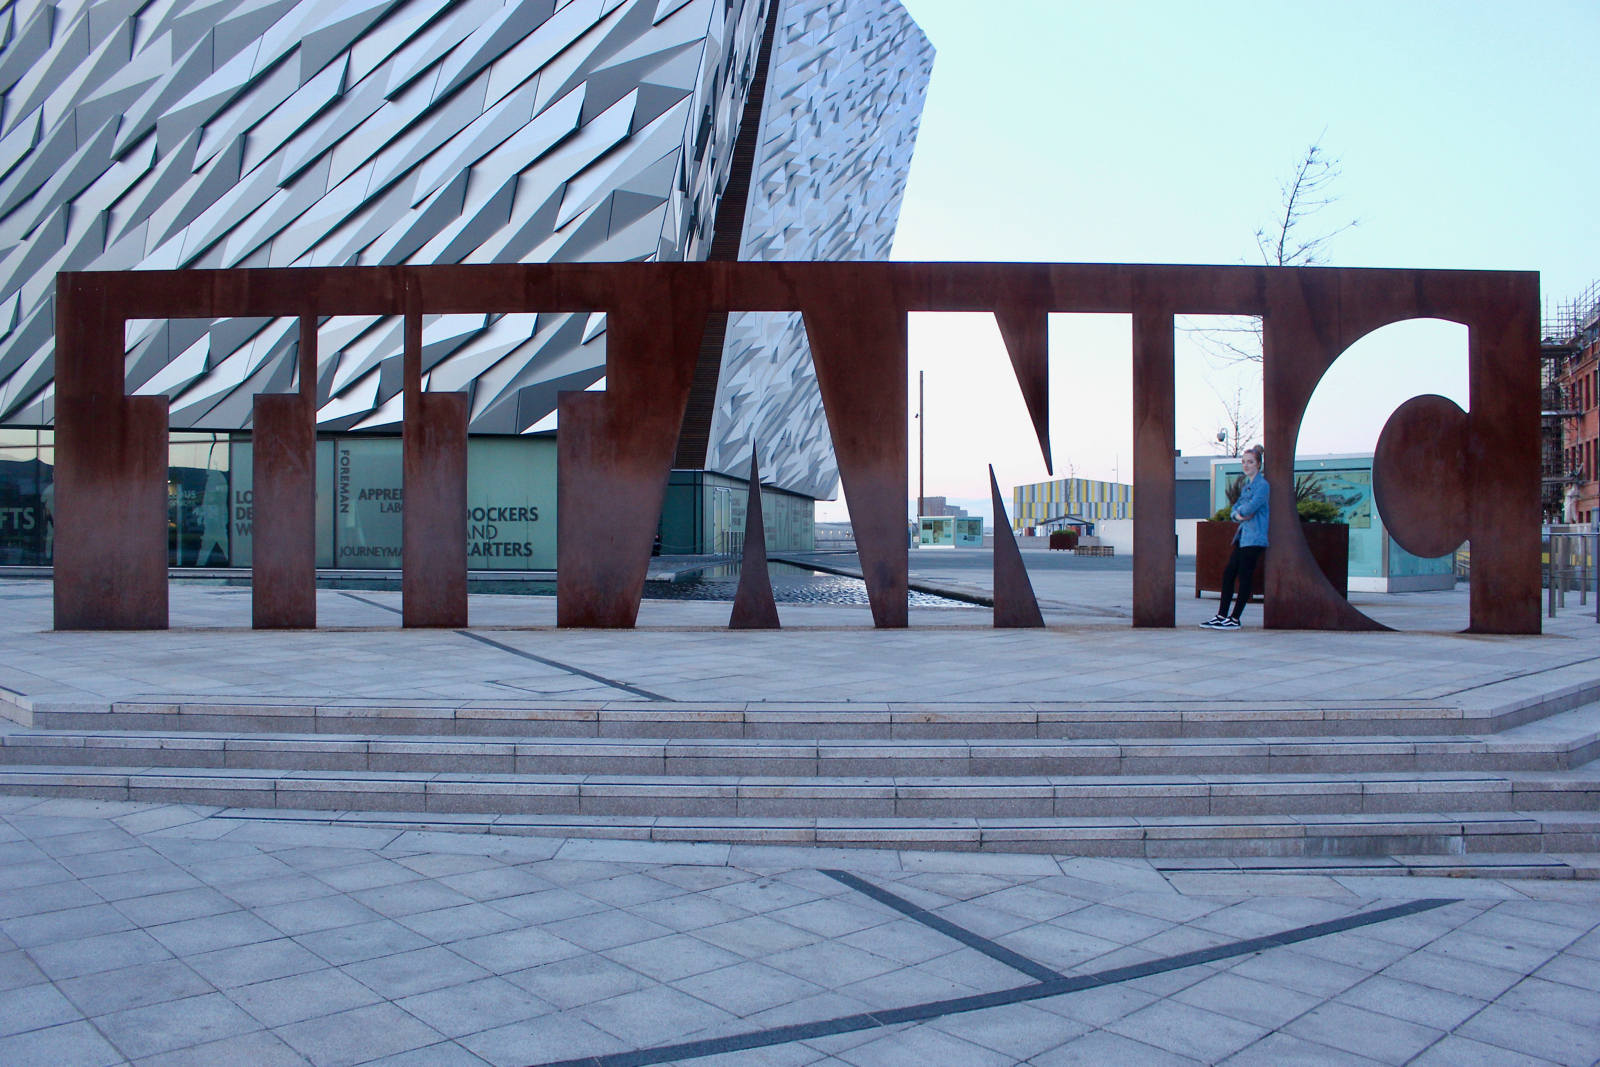 things to do in belfast, titanic belfast, titanic exhibition centre Belfast, what to do in Belfast, visit Belfast, Belfast blog, Belfast blogger, tourism Belfast, northern ireland tourism, titanic quarter Belfast, travel blog belfast, titanic sign belfast